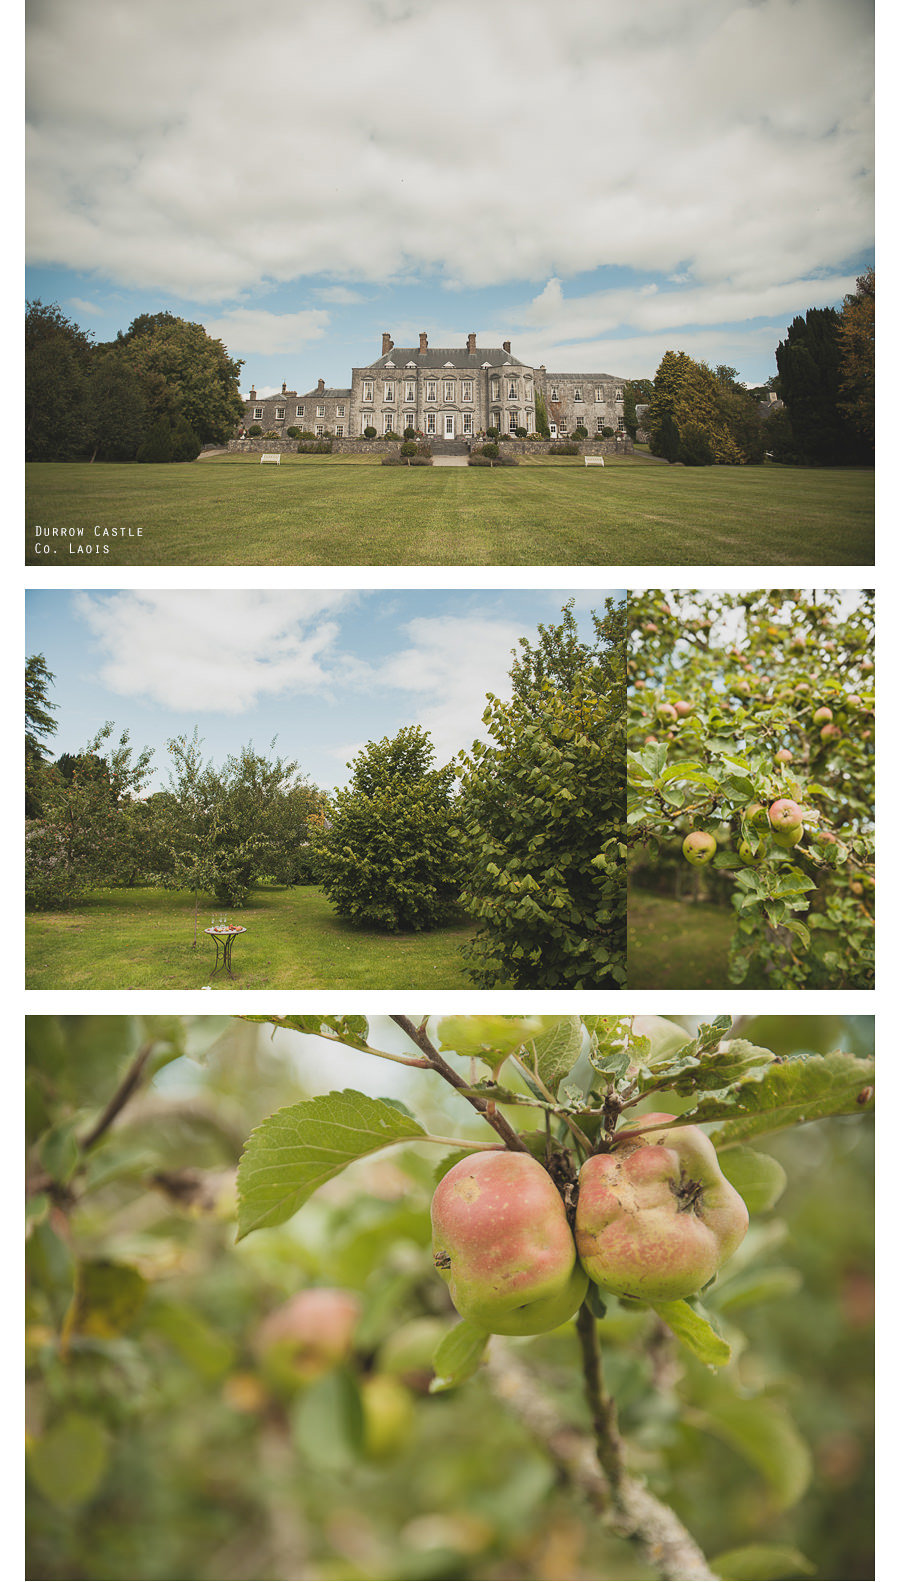 Wedding Location | Durrow Castle, Co. Laois